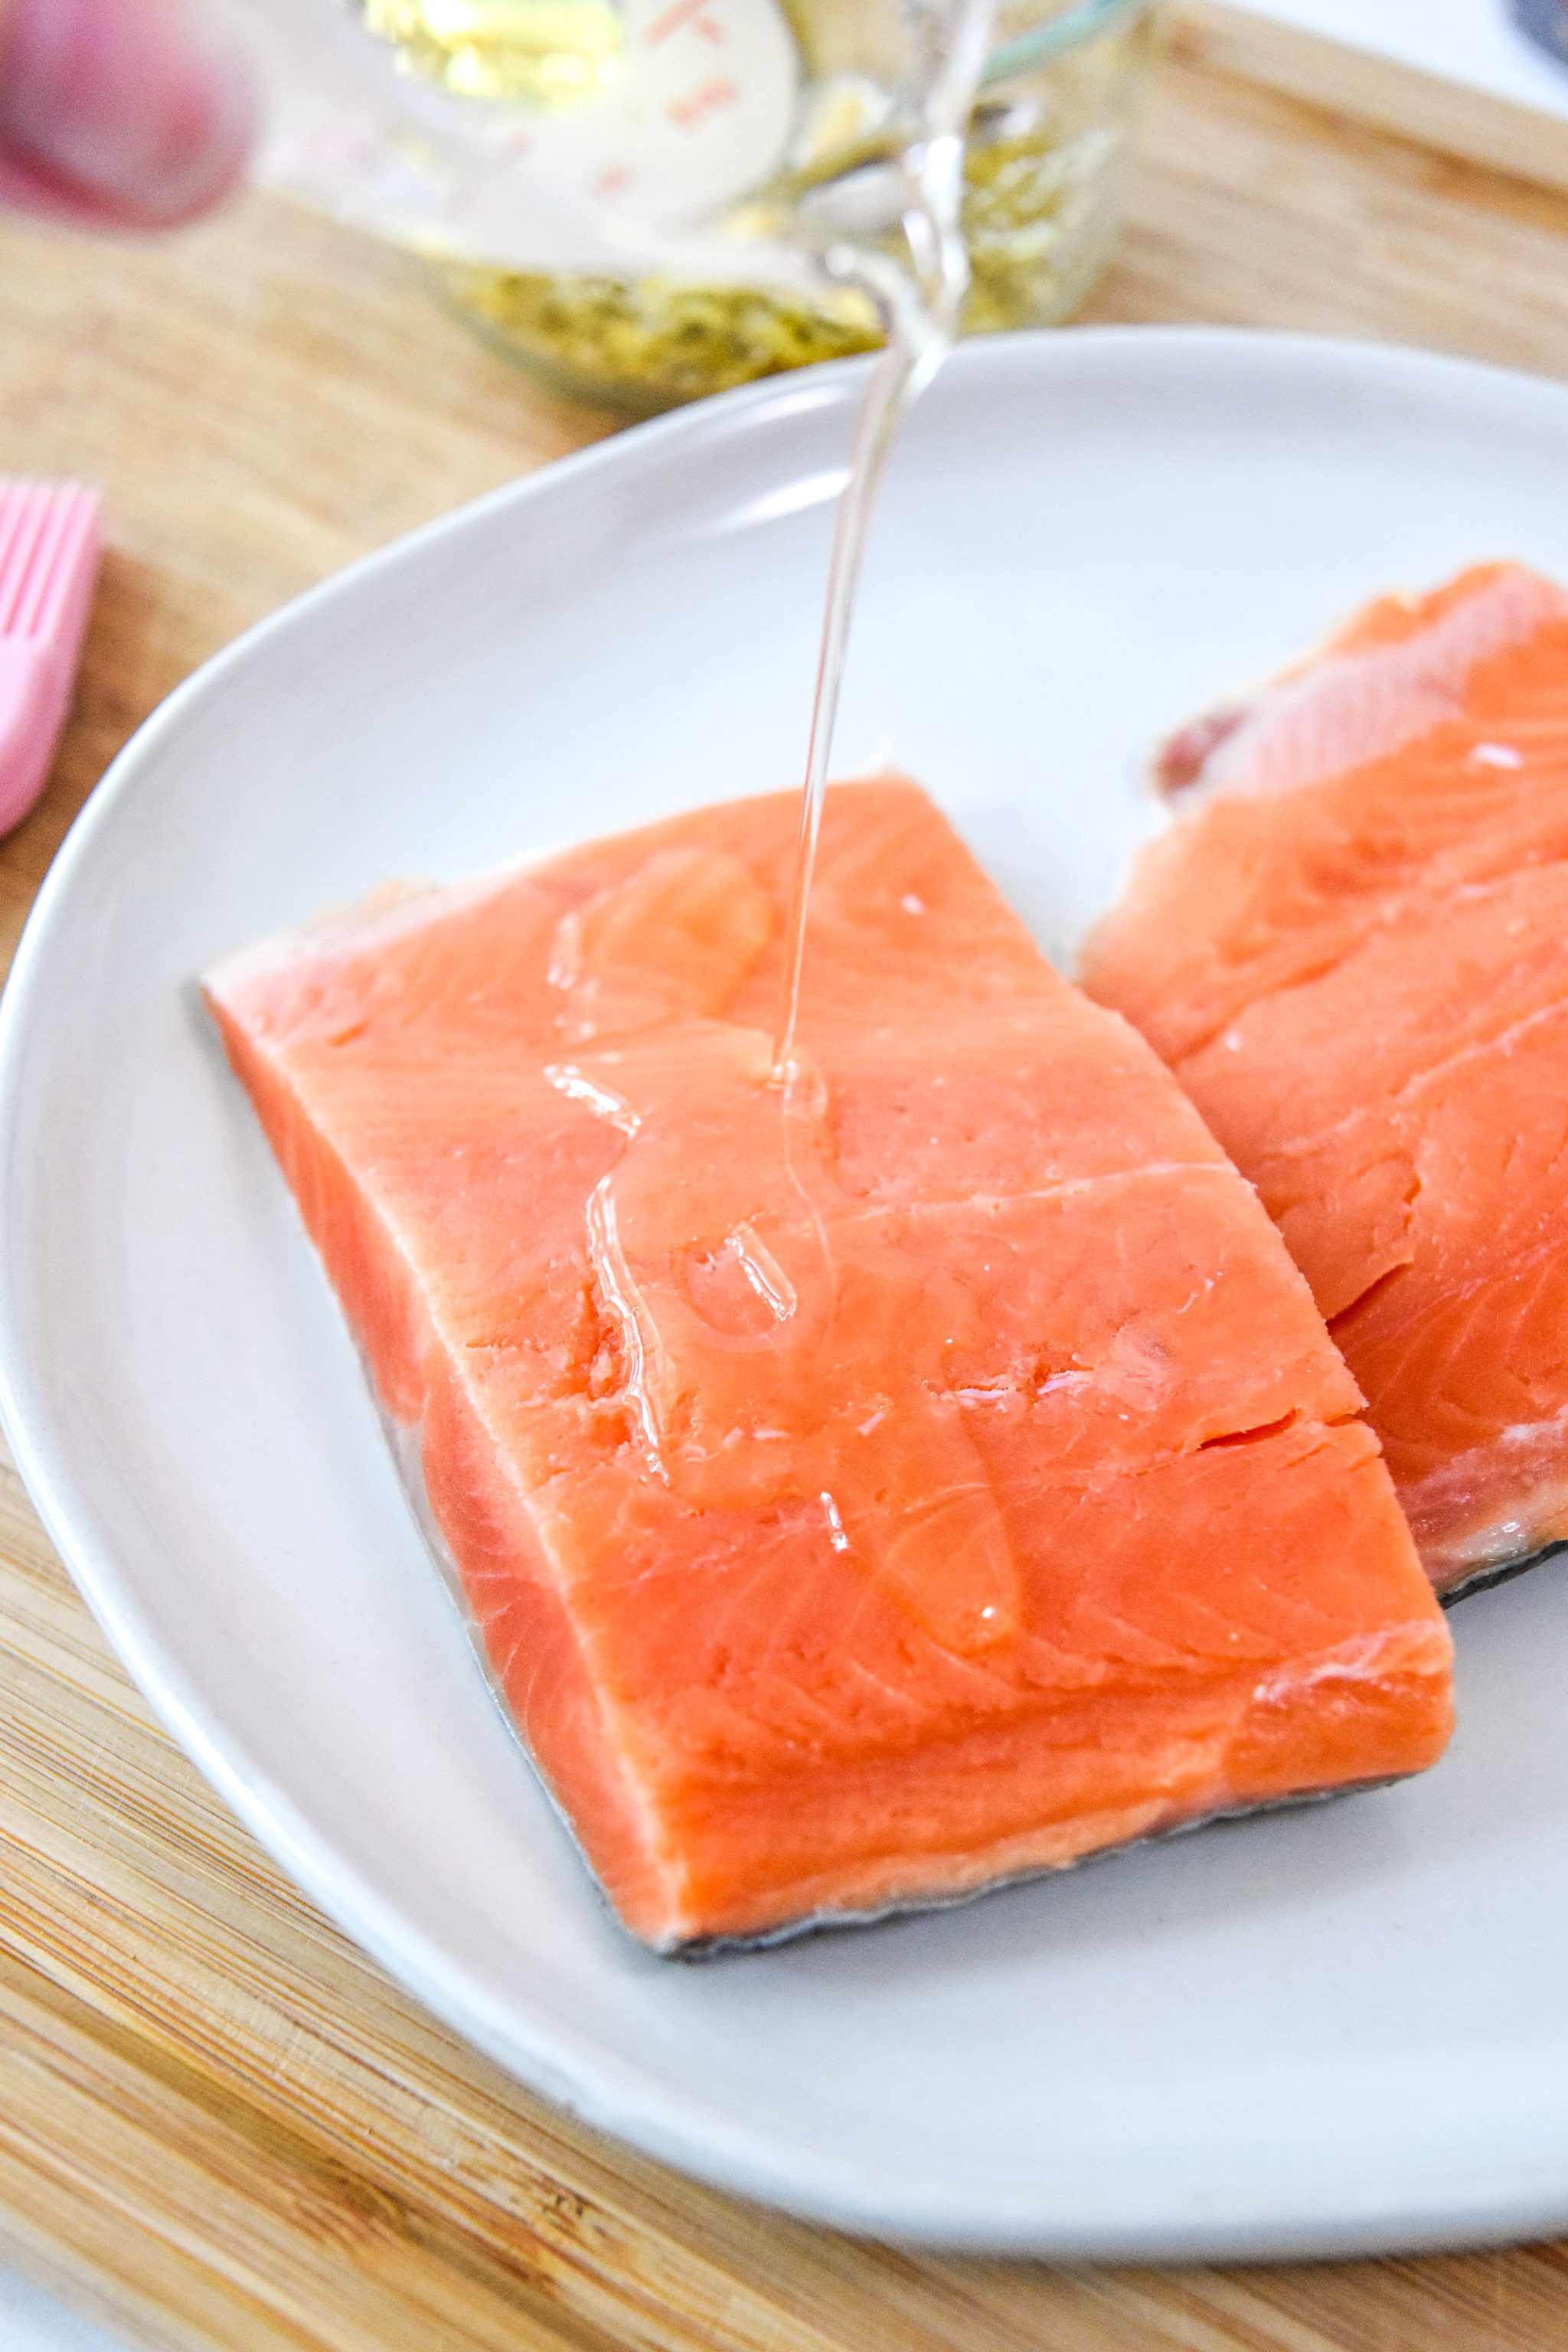 pouring oil on the salmon to coat both sides.